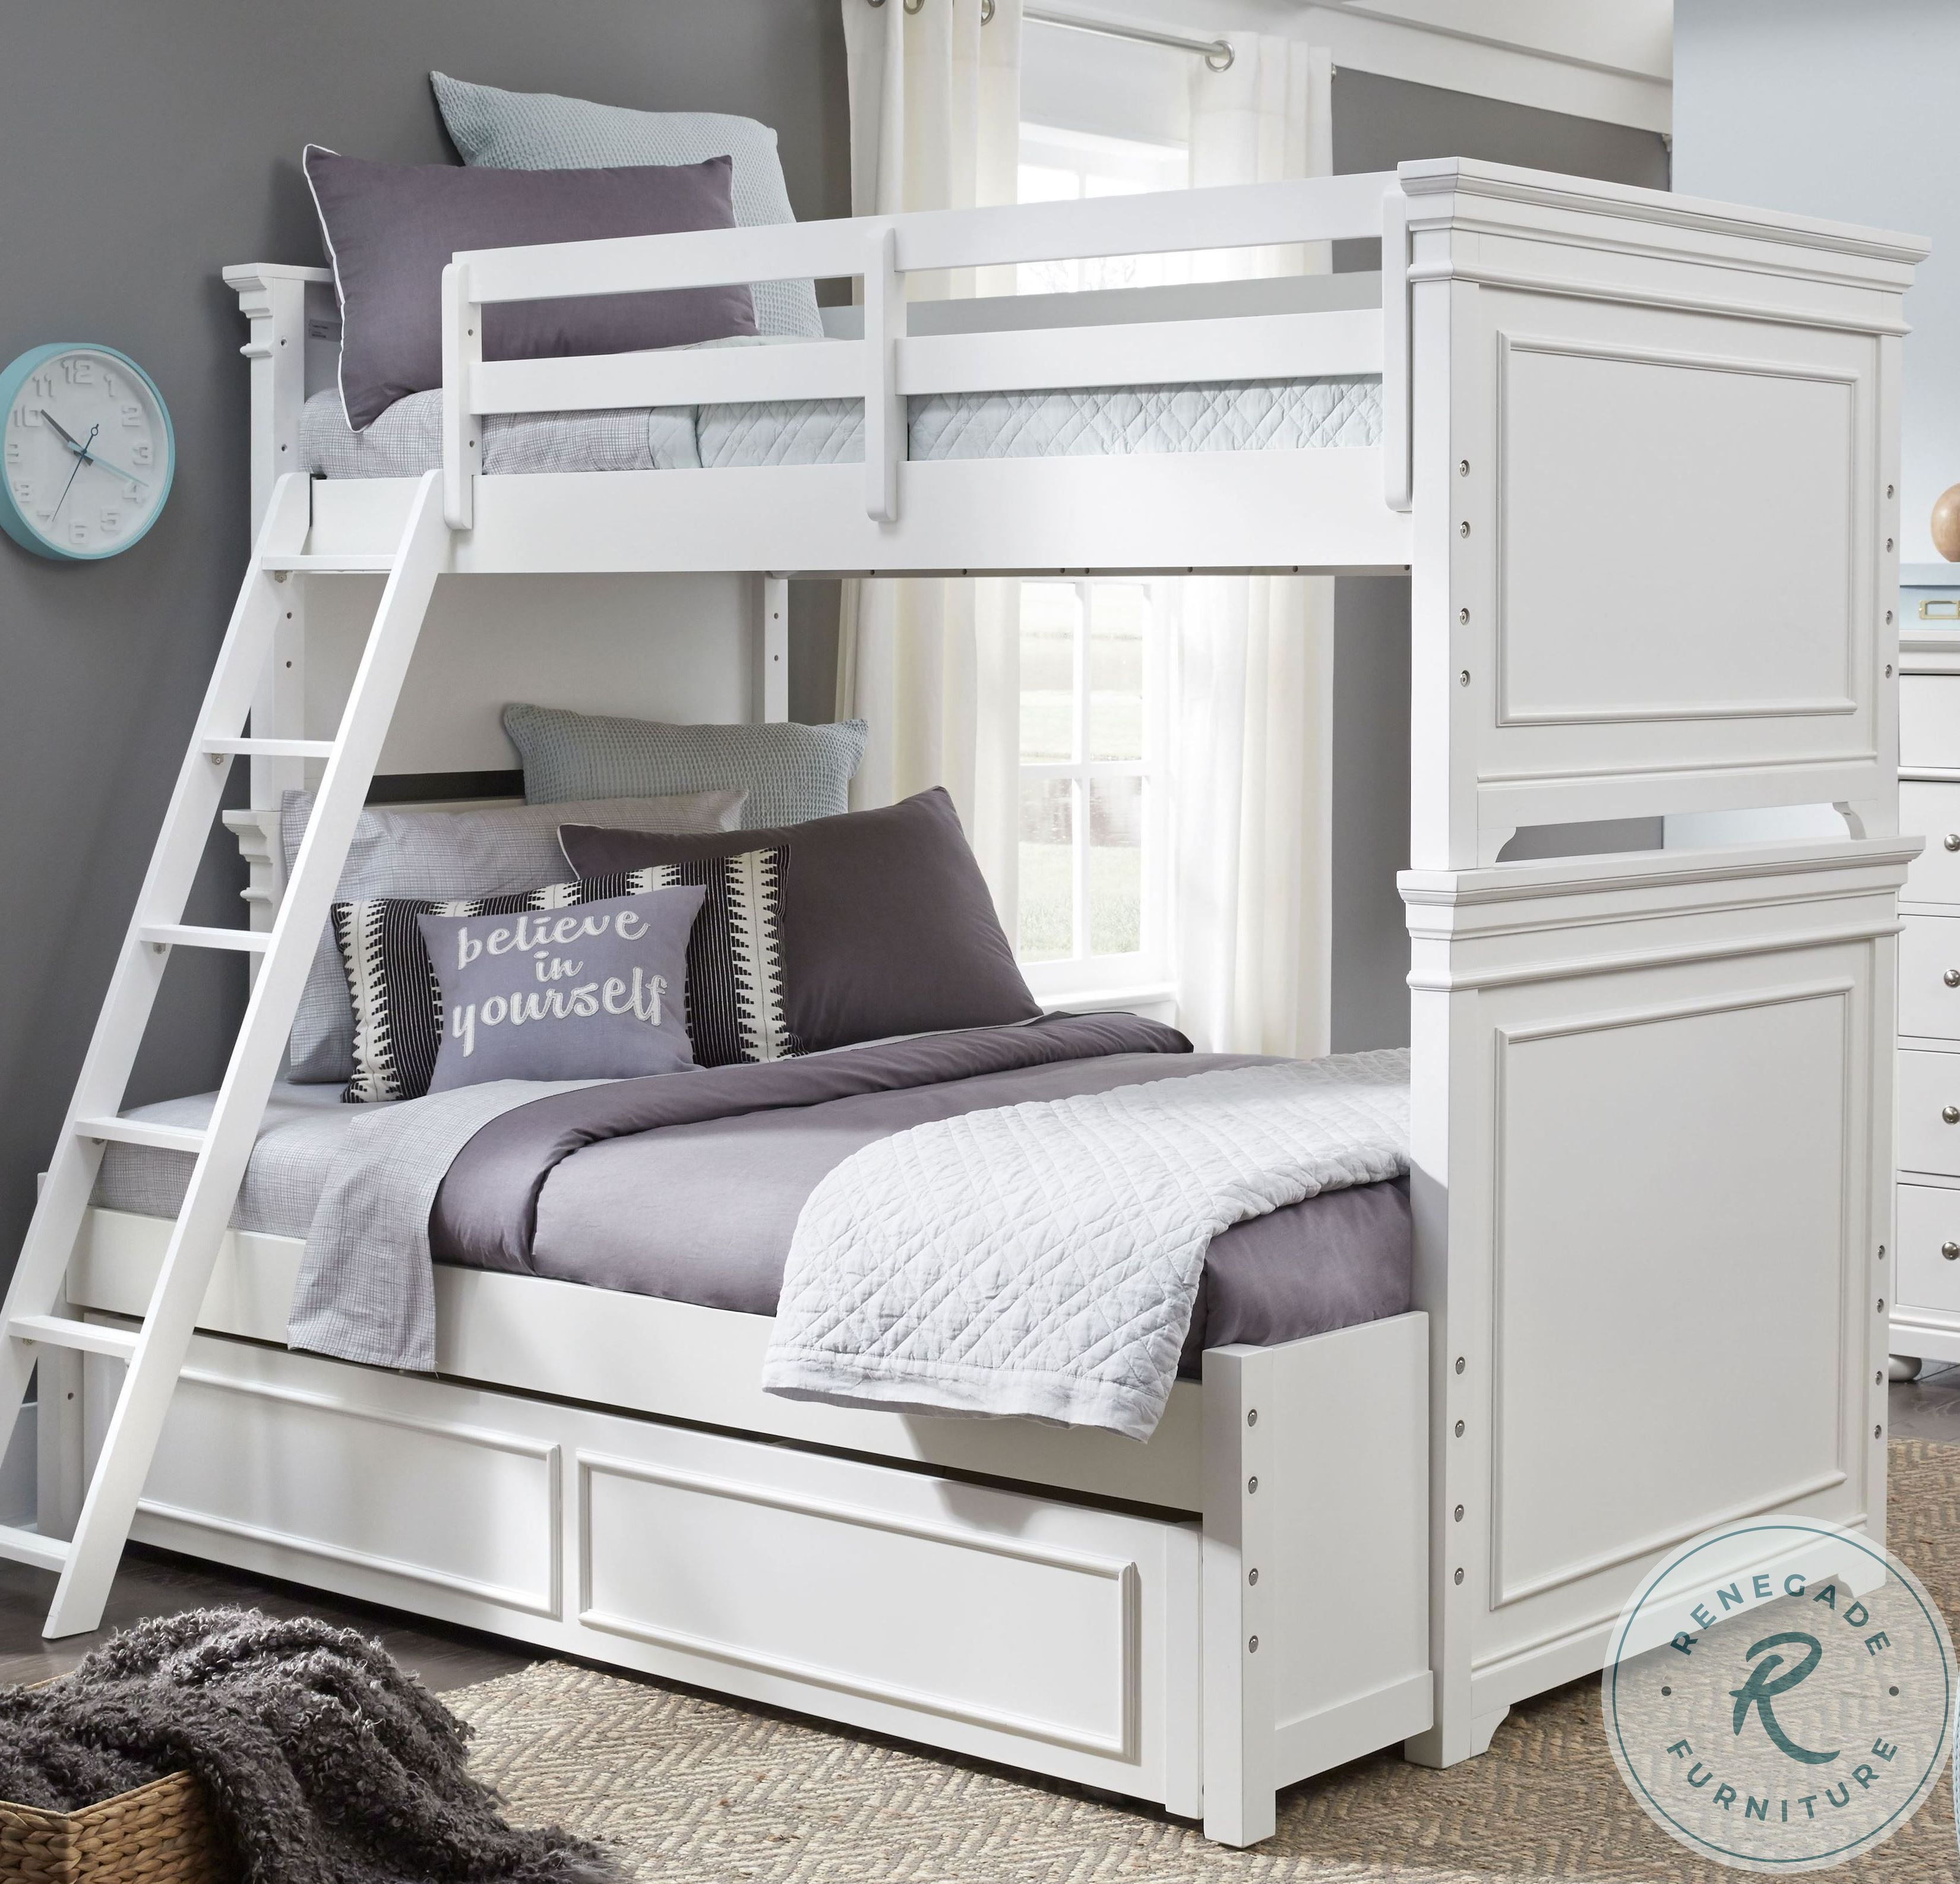 Hargrave Full Over Full Bunk Bed With Trundle Bunk Beds With Stairs Kids Bunk Beds Cool Bunk Beds